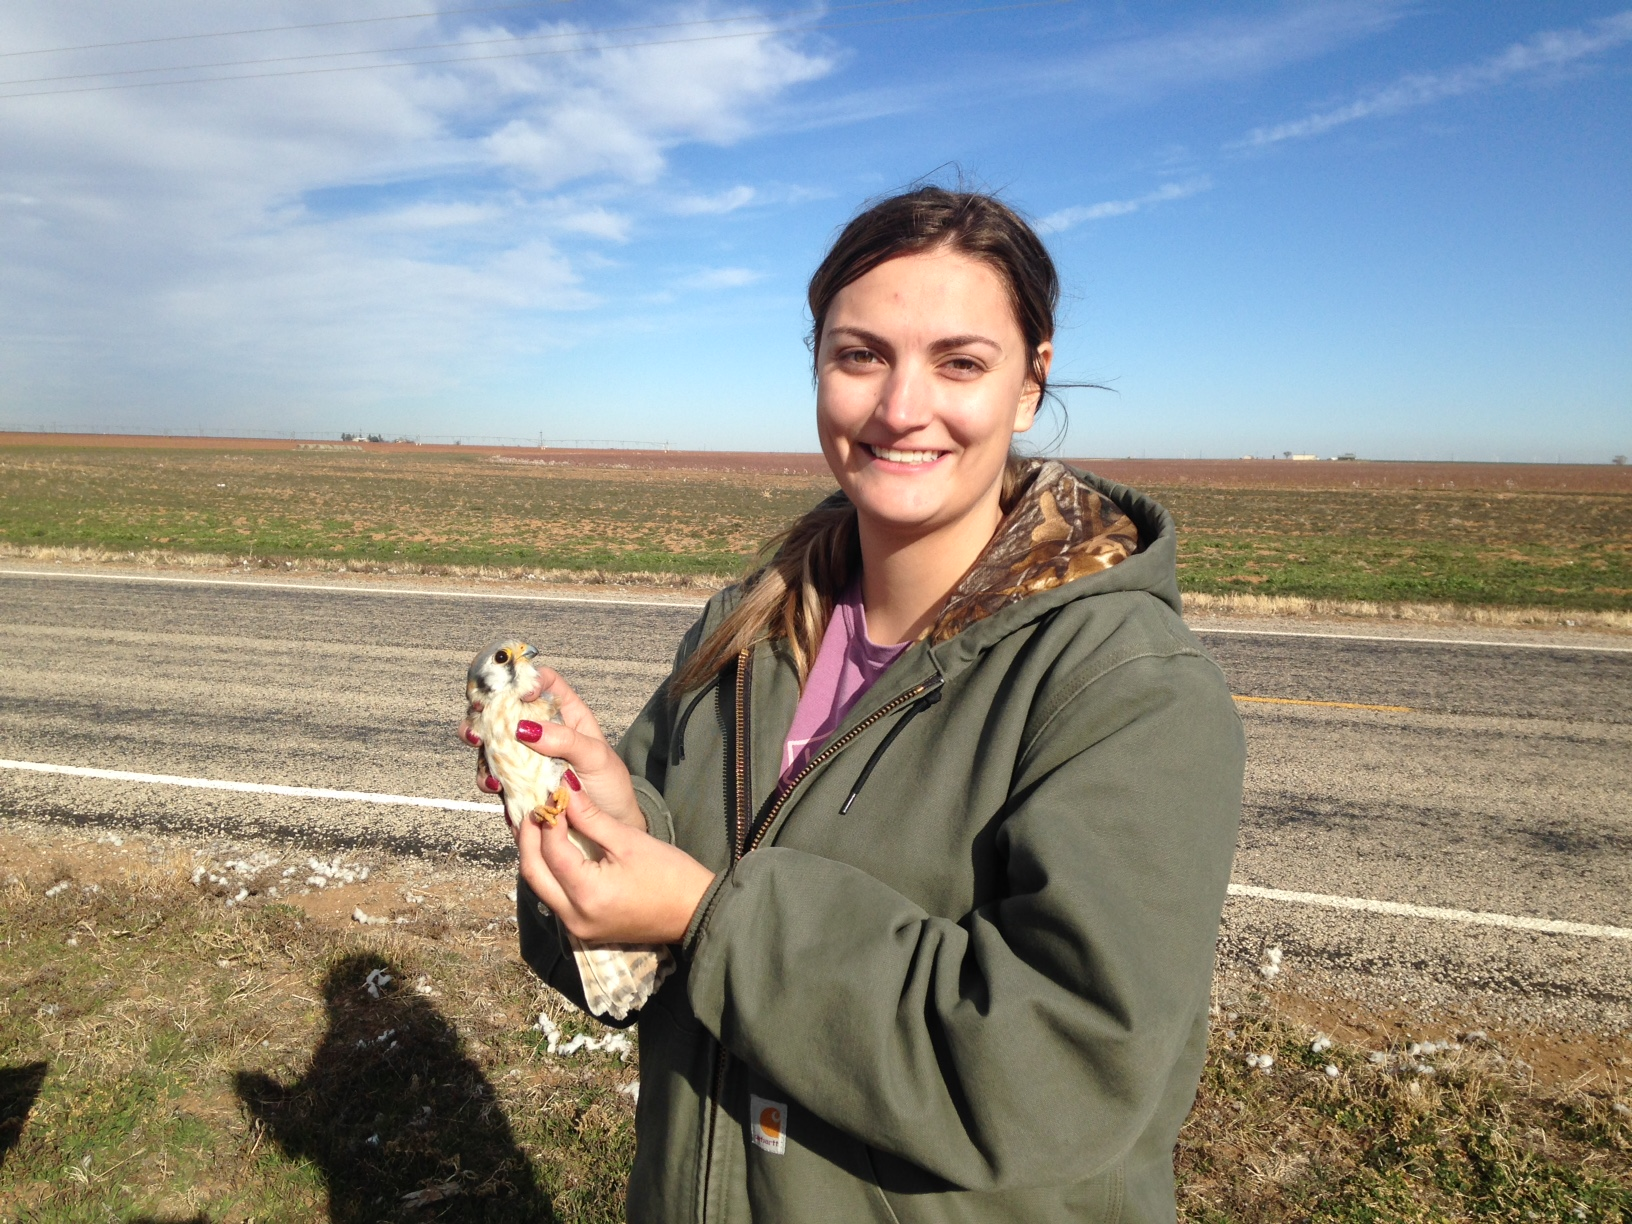 Jennifer Harris, MS student with the Texas Unit, is studying long term site occupancy and productivity of American Kestrels in relation to wind energy development and annual variance in weather conditions.